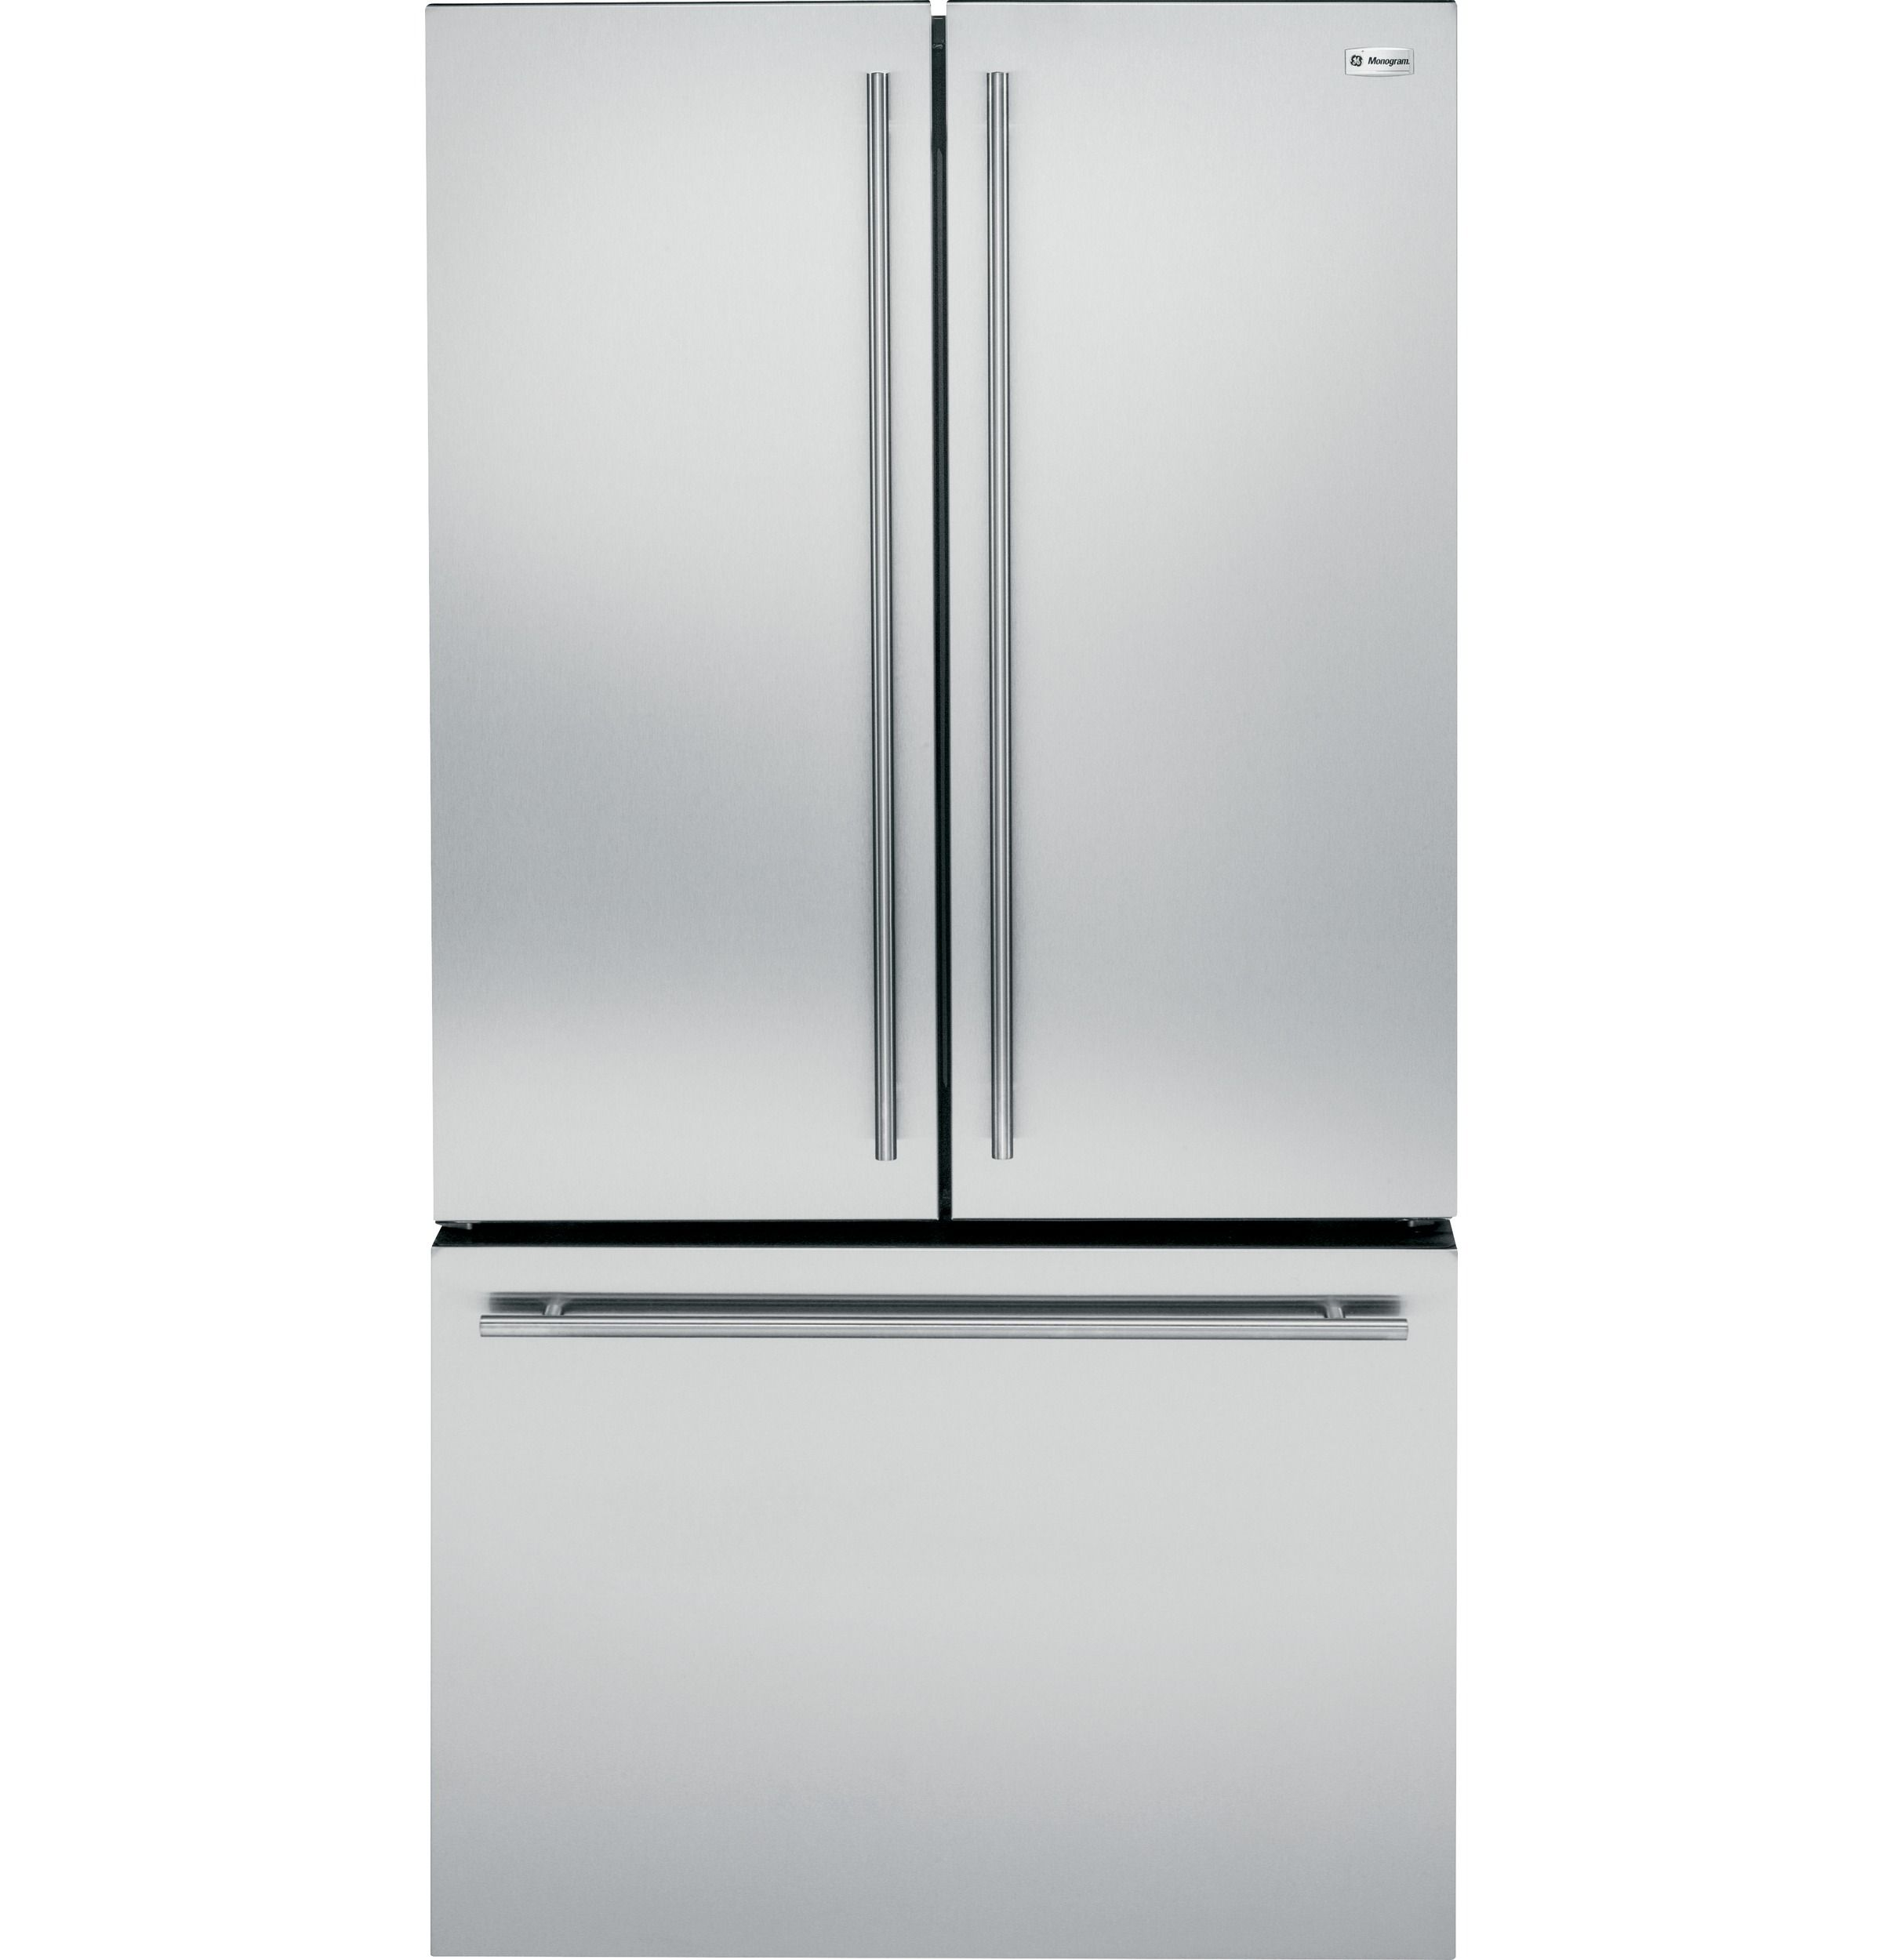 ZWE23ESHSS   GE Monogram® ENERGY STAR® 23.1 Cu. Ft. Counter Depth  French Door Refrigerator   The Monogram Collection